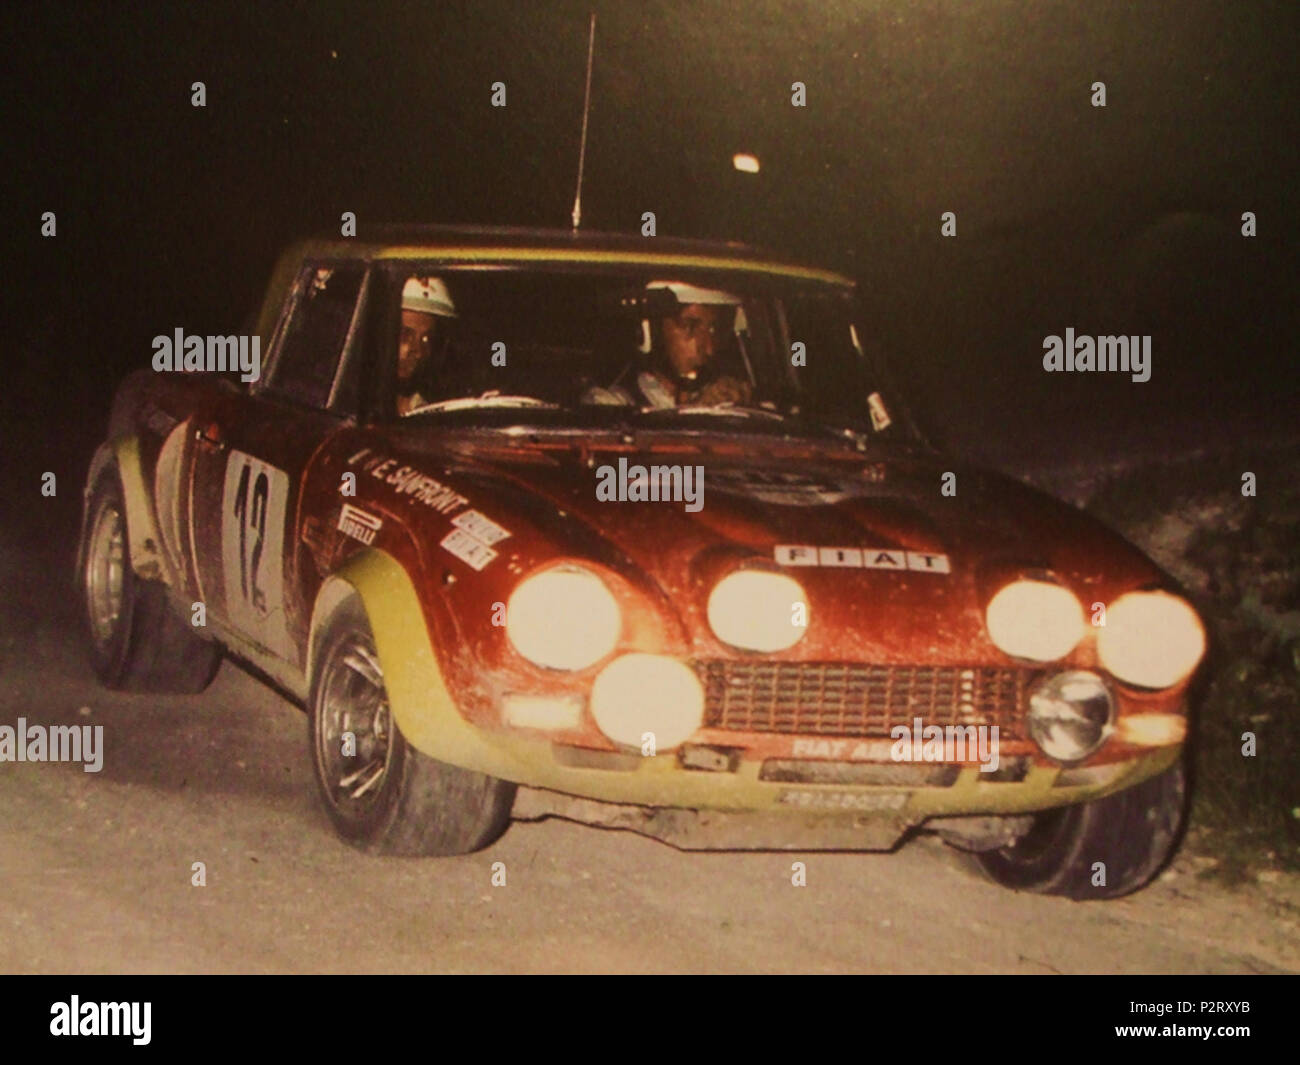 Fiat 124 Abarth Stock Photos Fiat 124 Abarth Stock Images Alamy